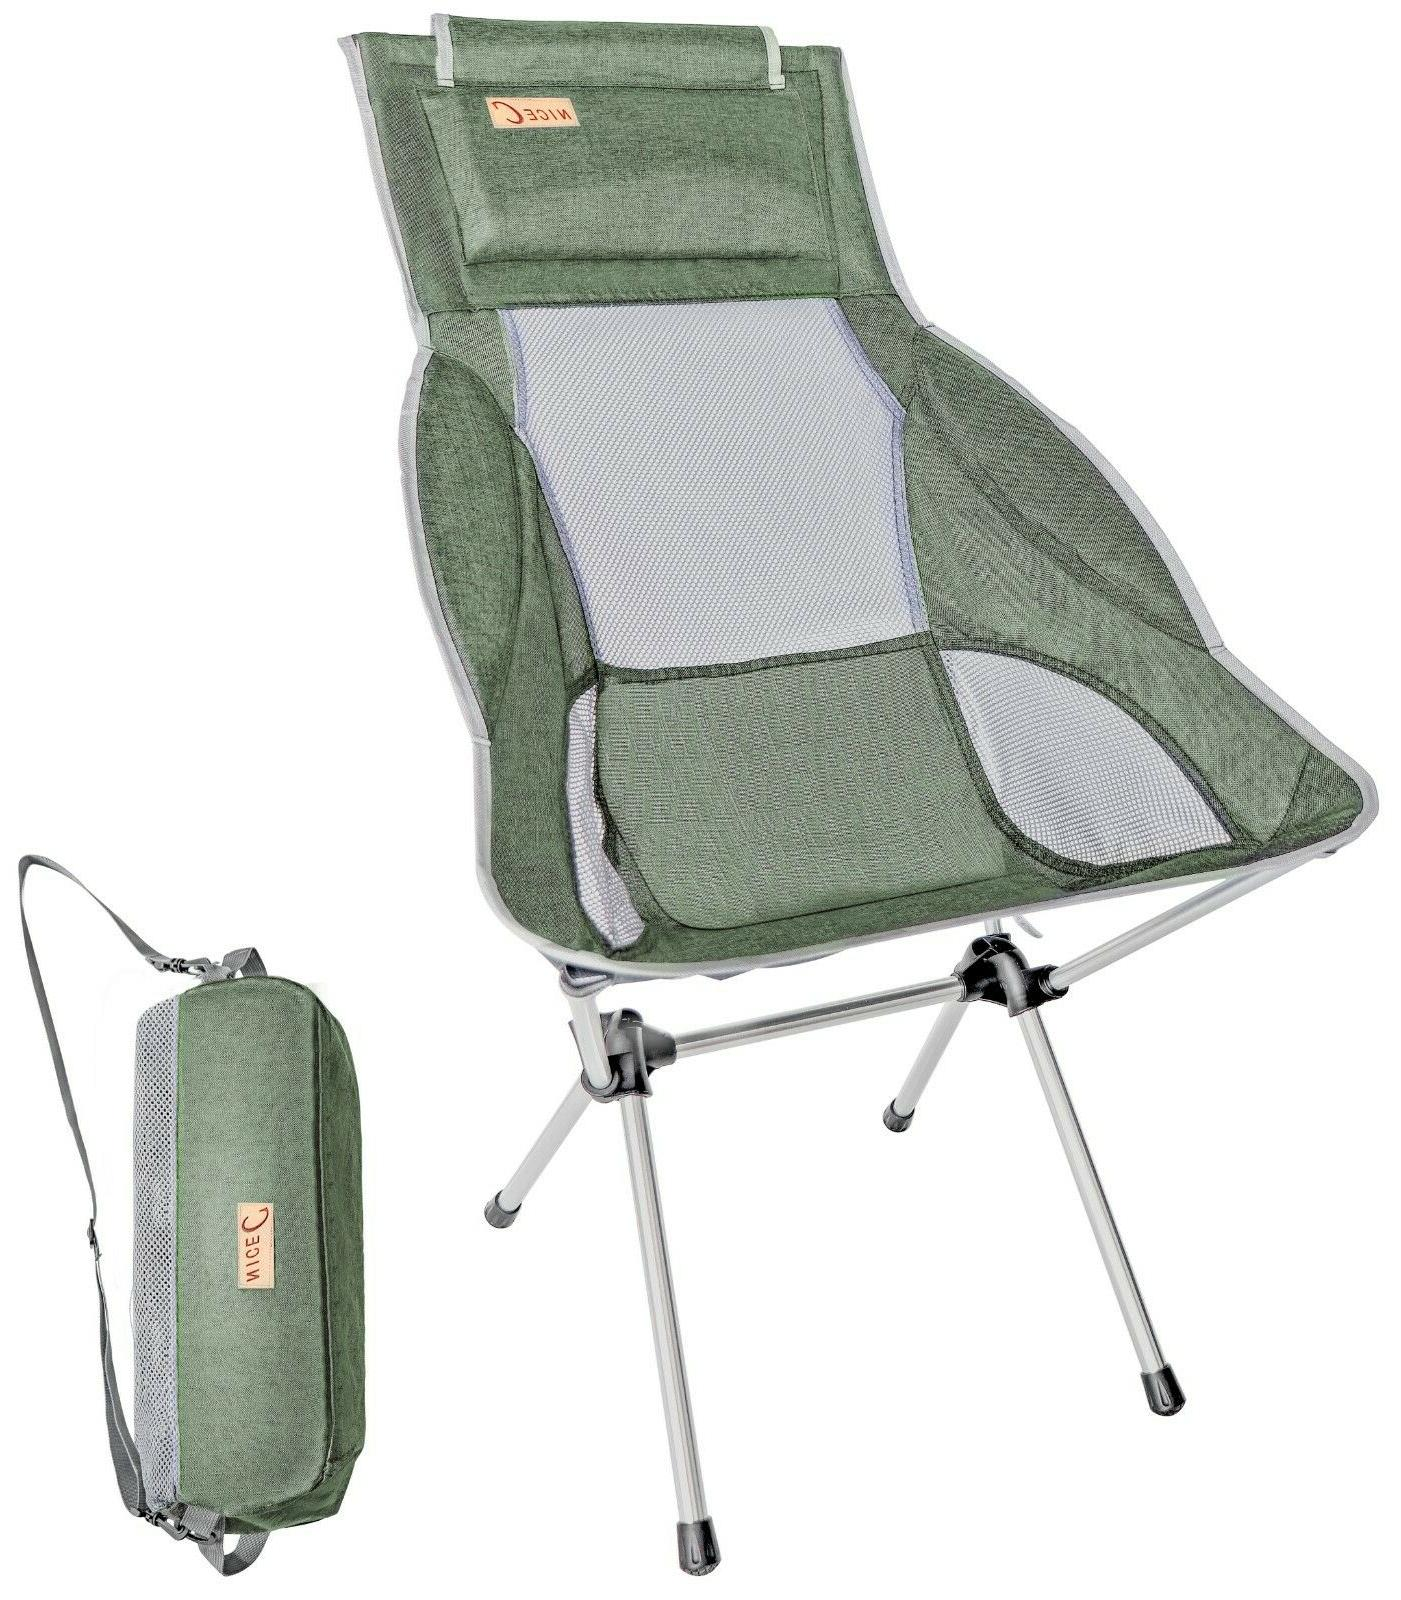 Ultralight High Back Folding Camping Chair With Headrest